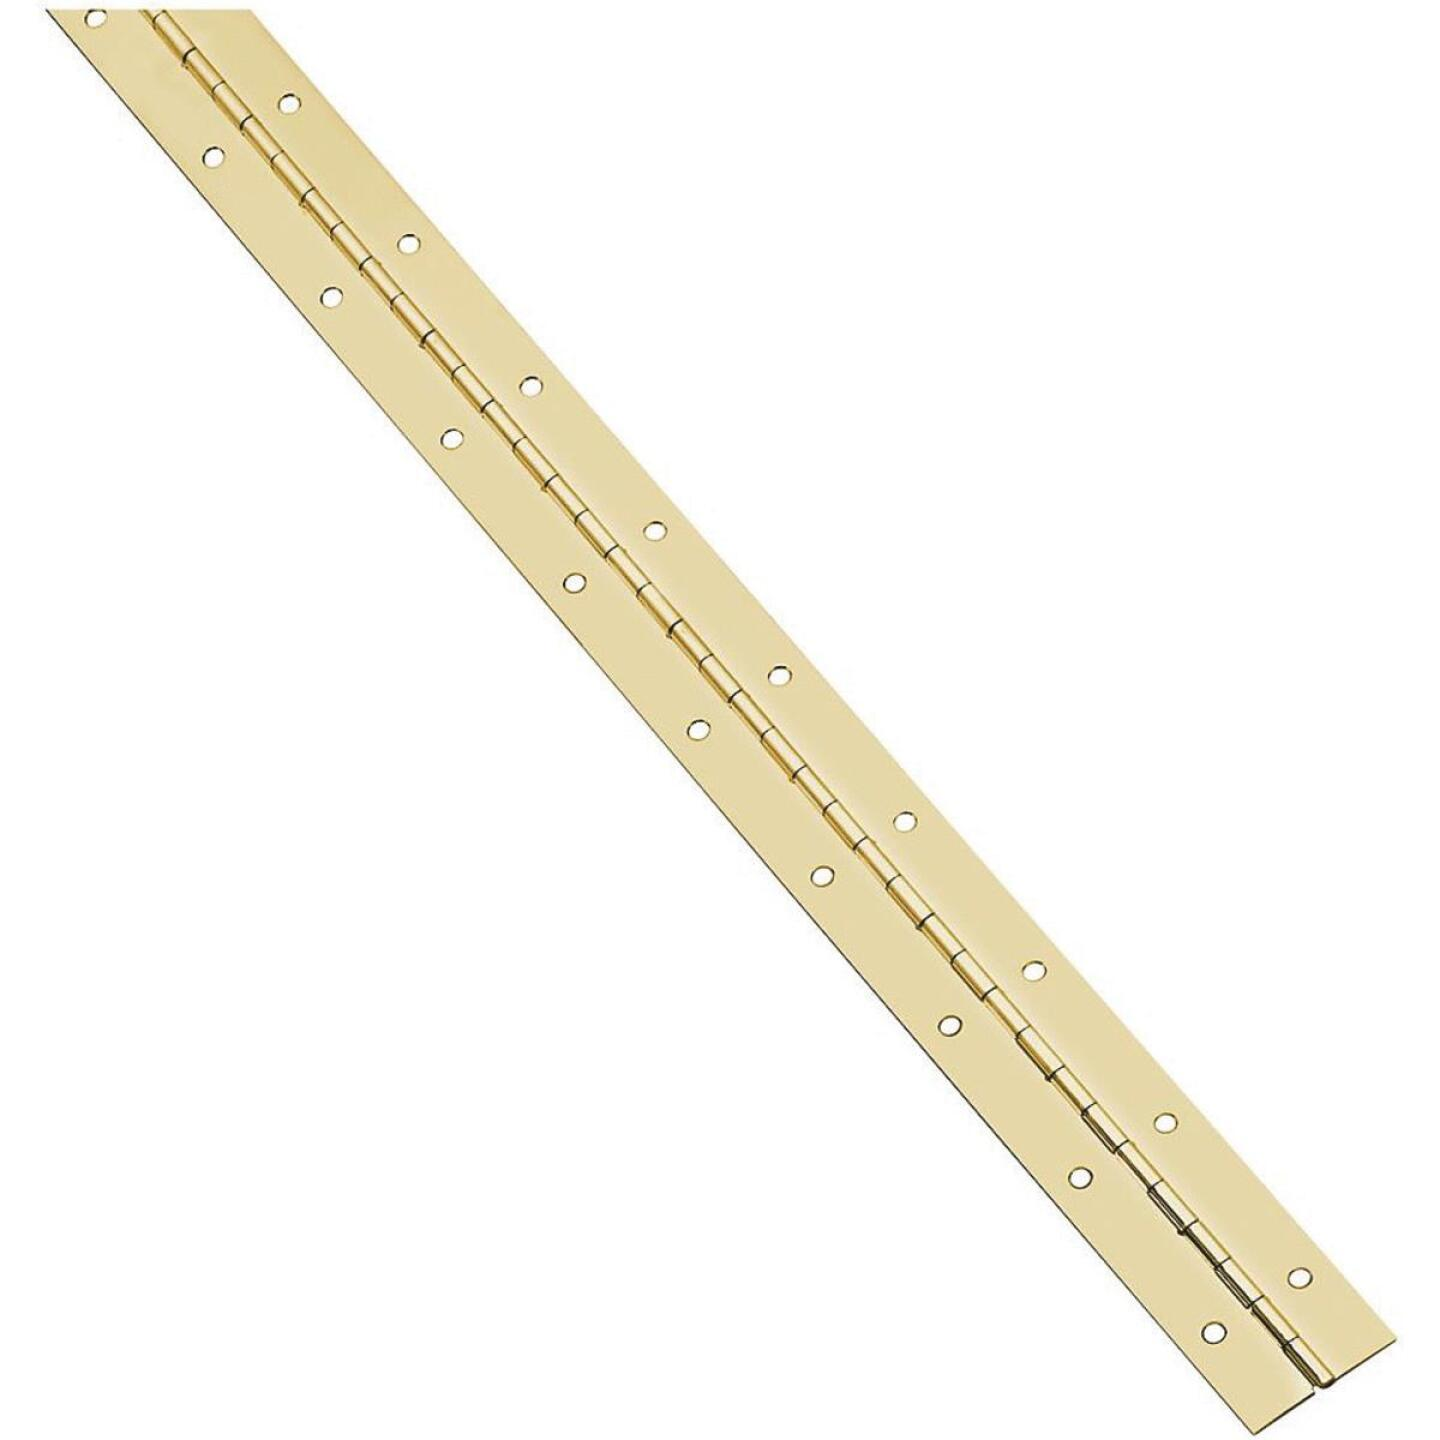 National Steel 1-1/16 In. x 30 In. Bright Brass Continuous Hinge Image 1